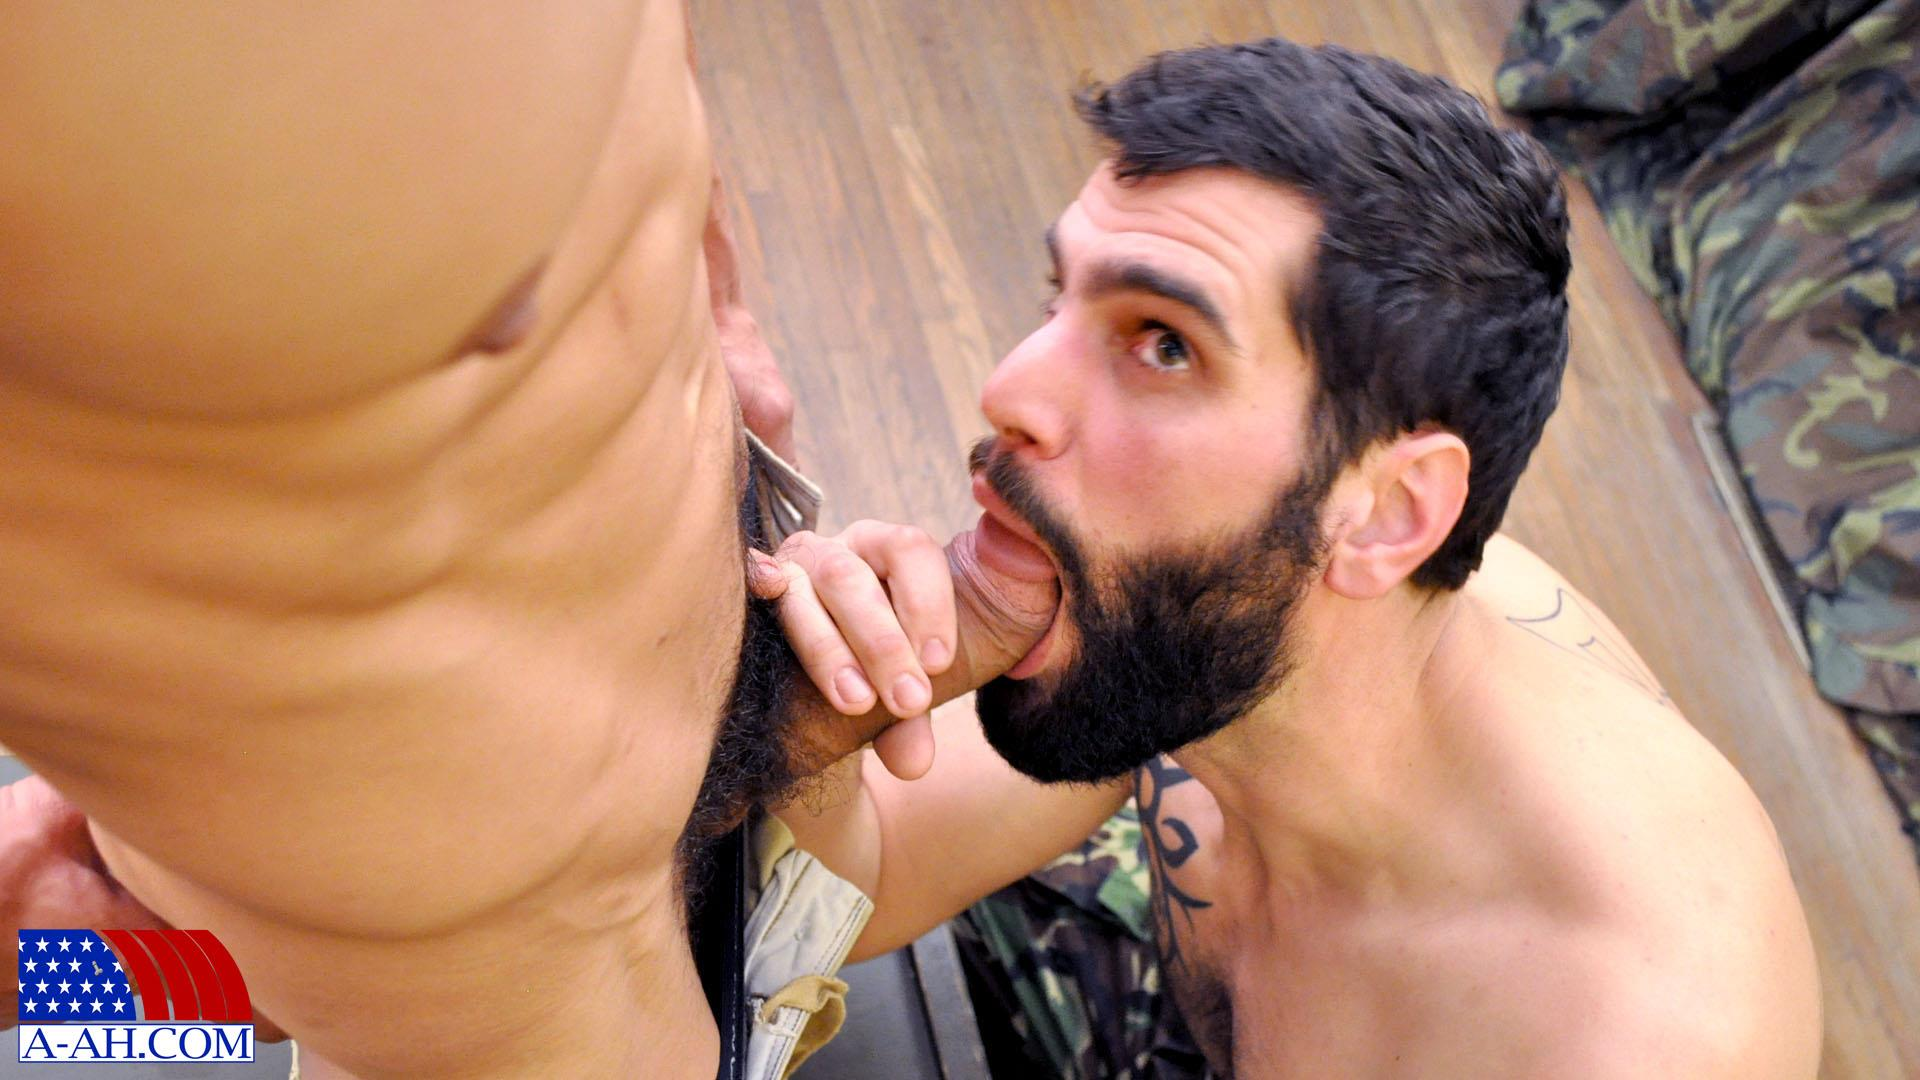 All-American-Heroes-Petty-Officer-Eddy-Fucks-Private-Antonio-Big-Uncut-Cocks-Amateur-Gay-Porn-05 Amateur Military Guys With Big Uncut Cocks Fucking Hard